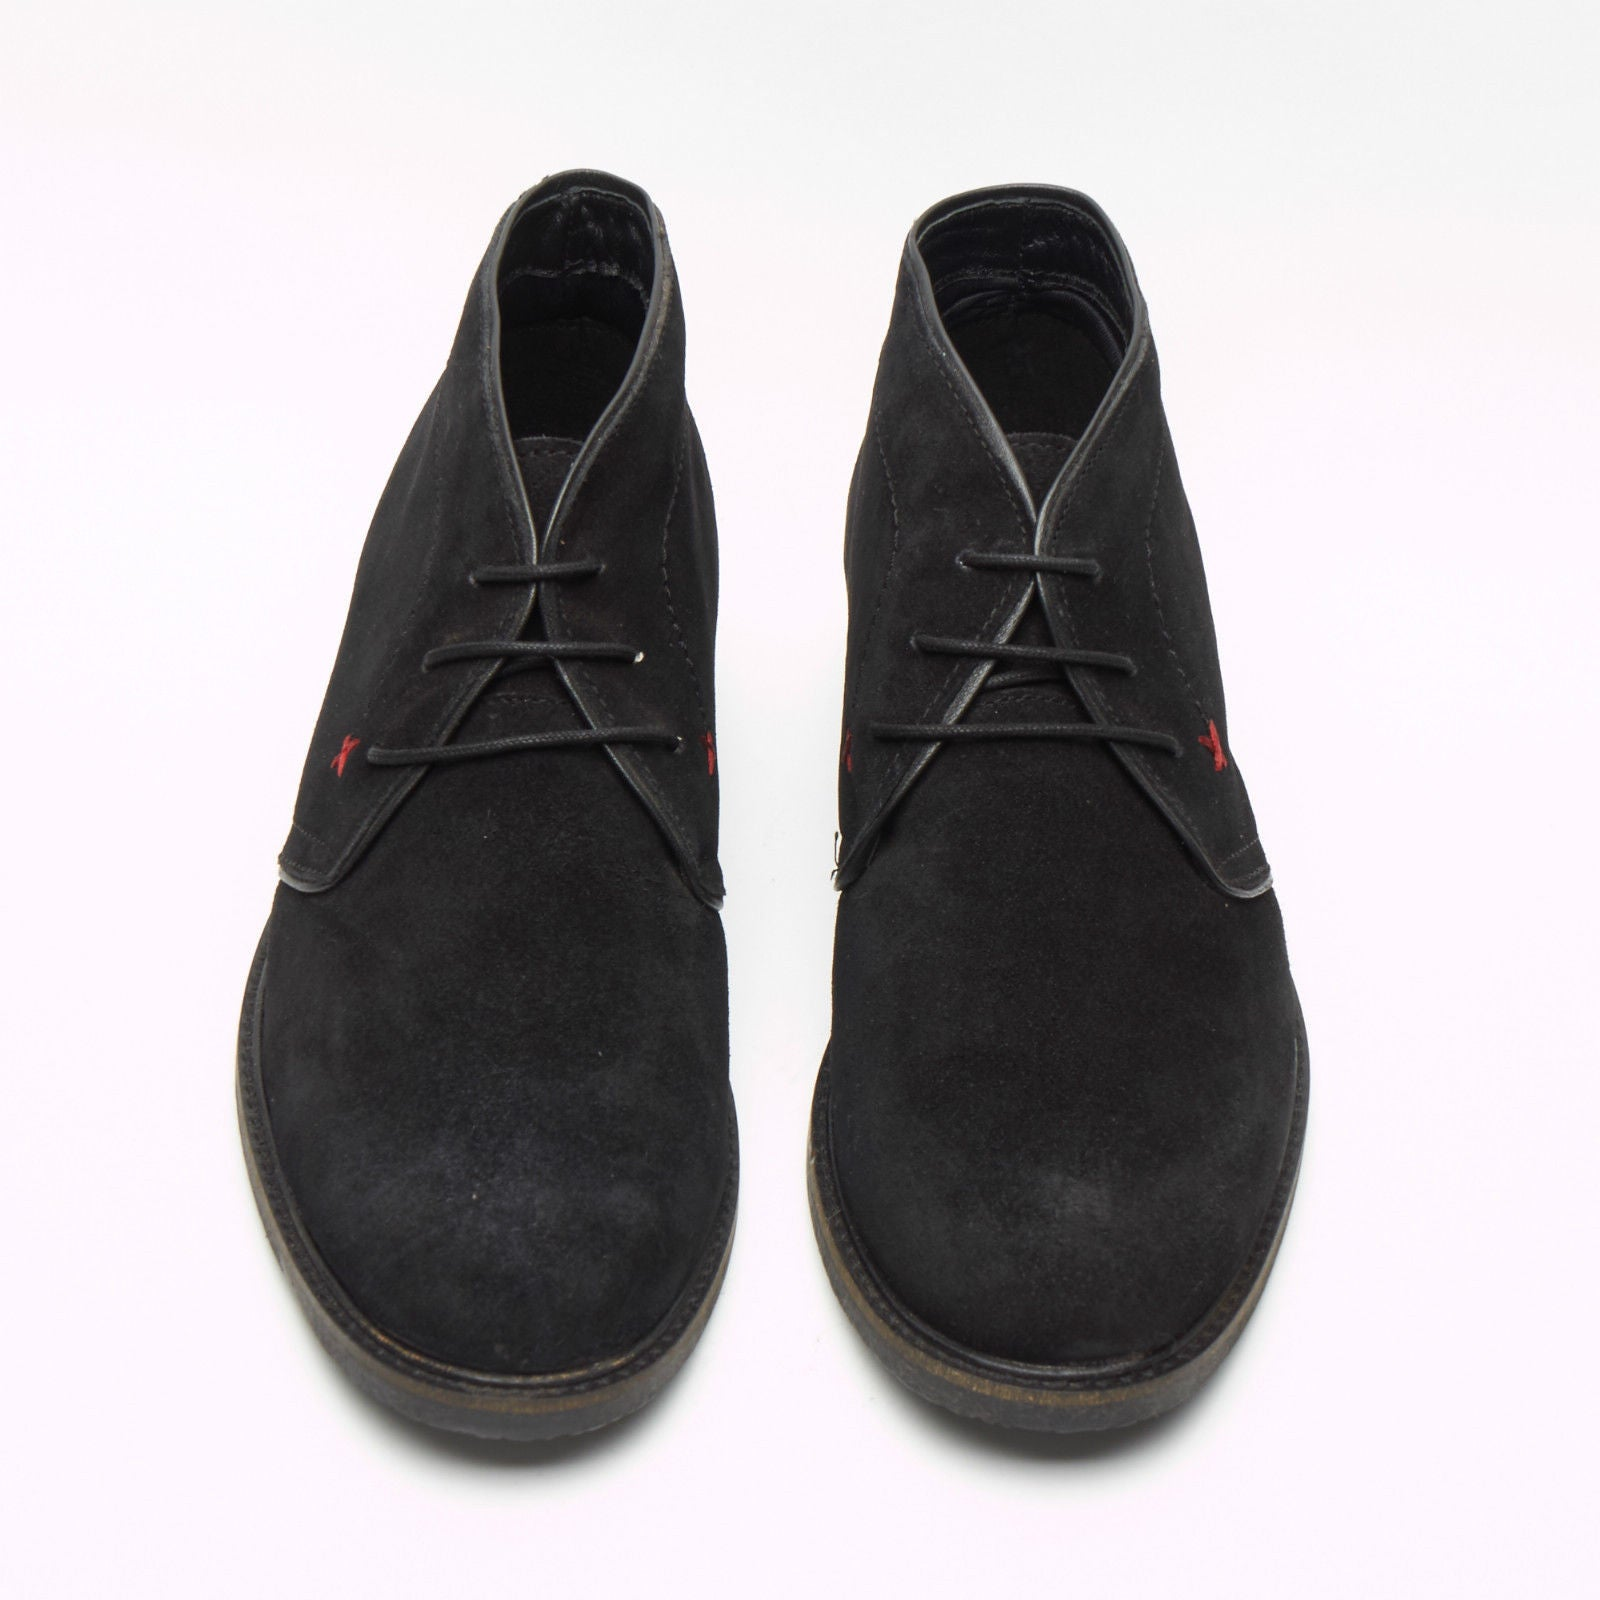 9992f593fb71f Mens Suede Desert Boots - SF-5151 Navy Blue – Lucini Shoes